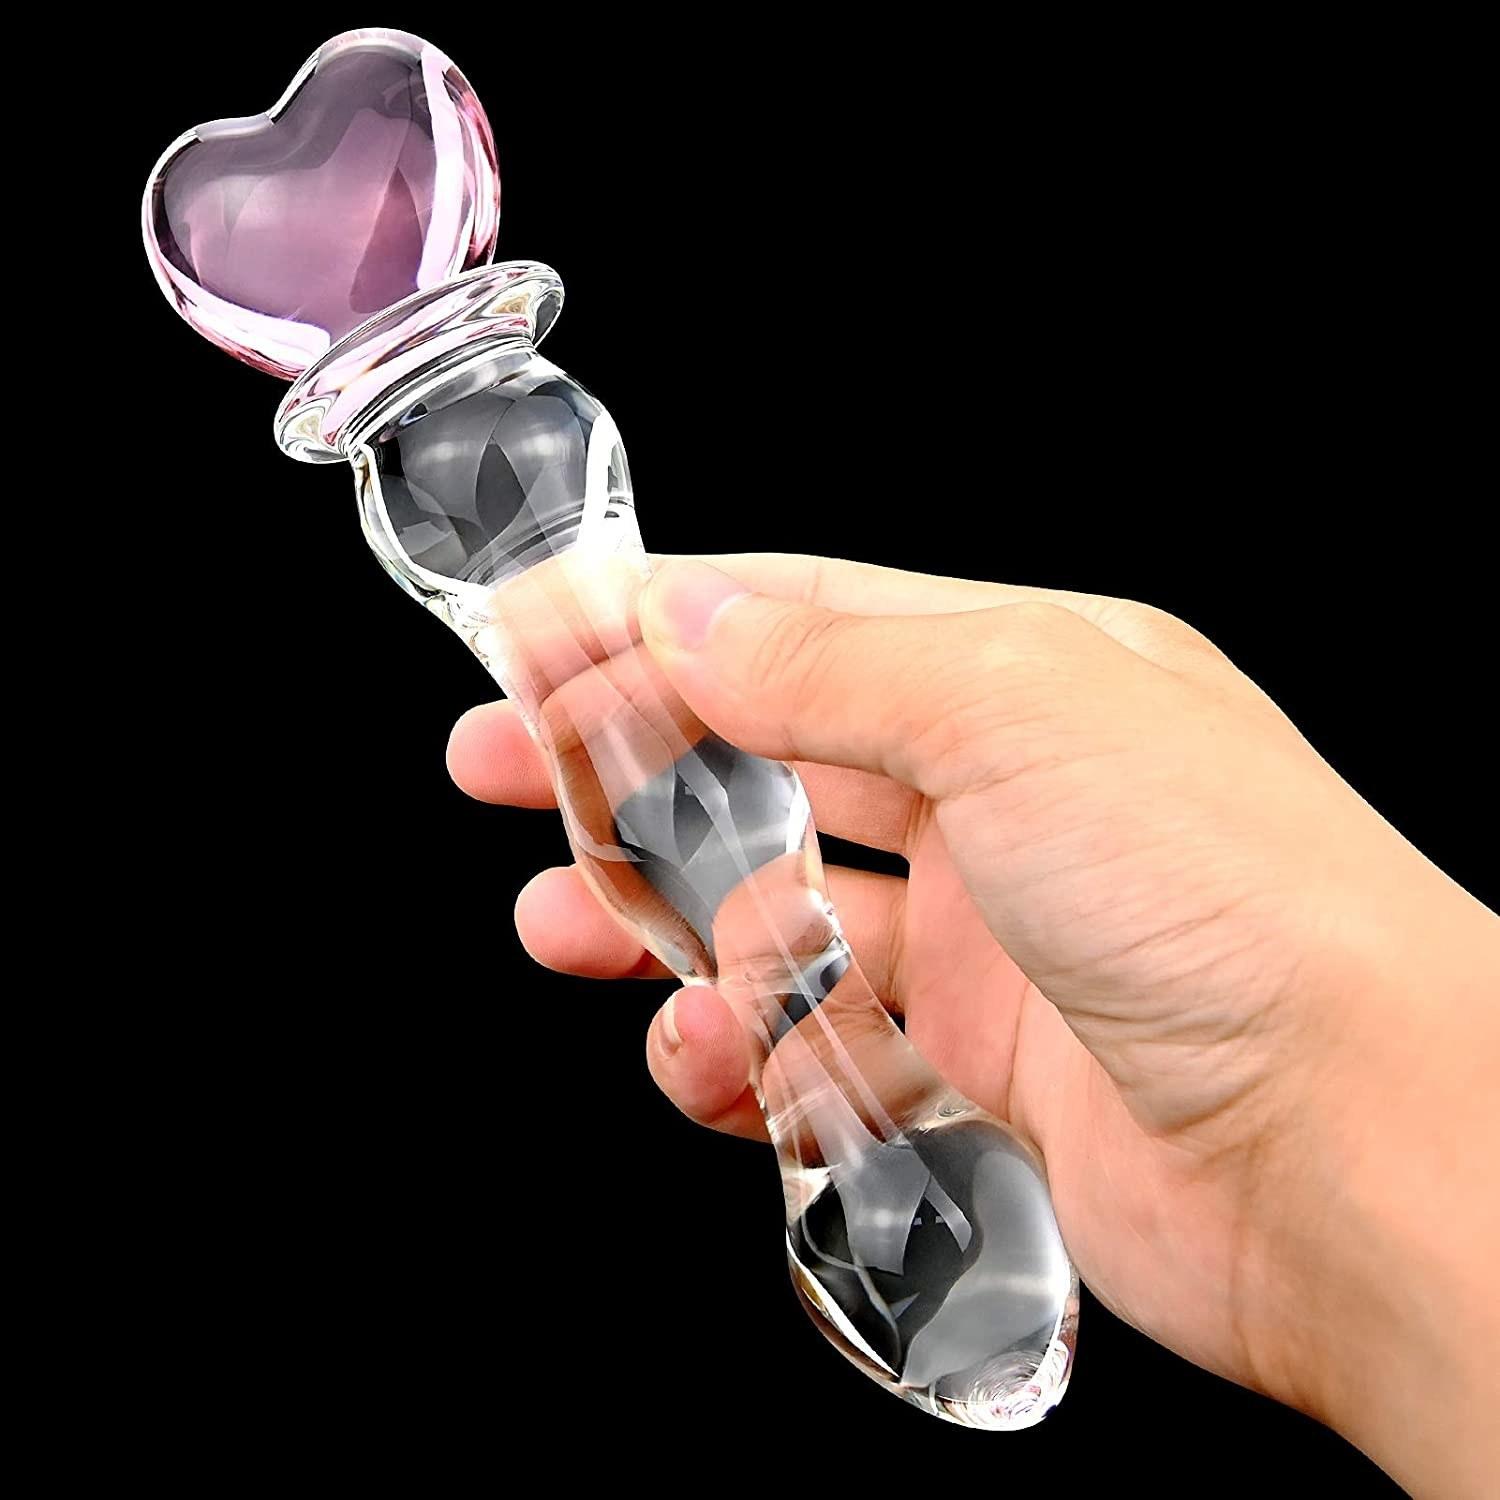 a model's hand holding the sex factory glass dildo up against a black background